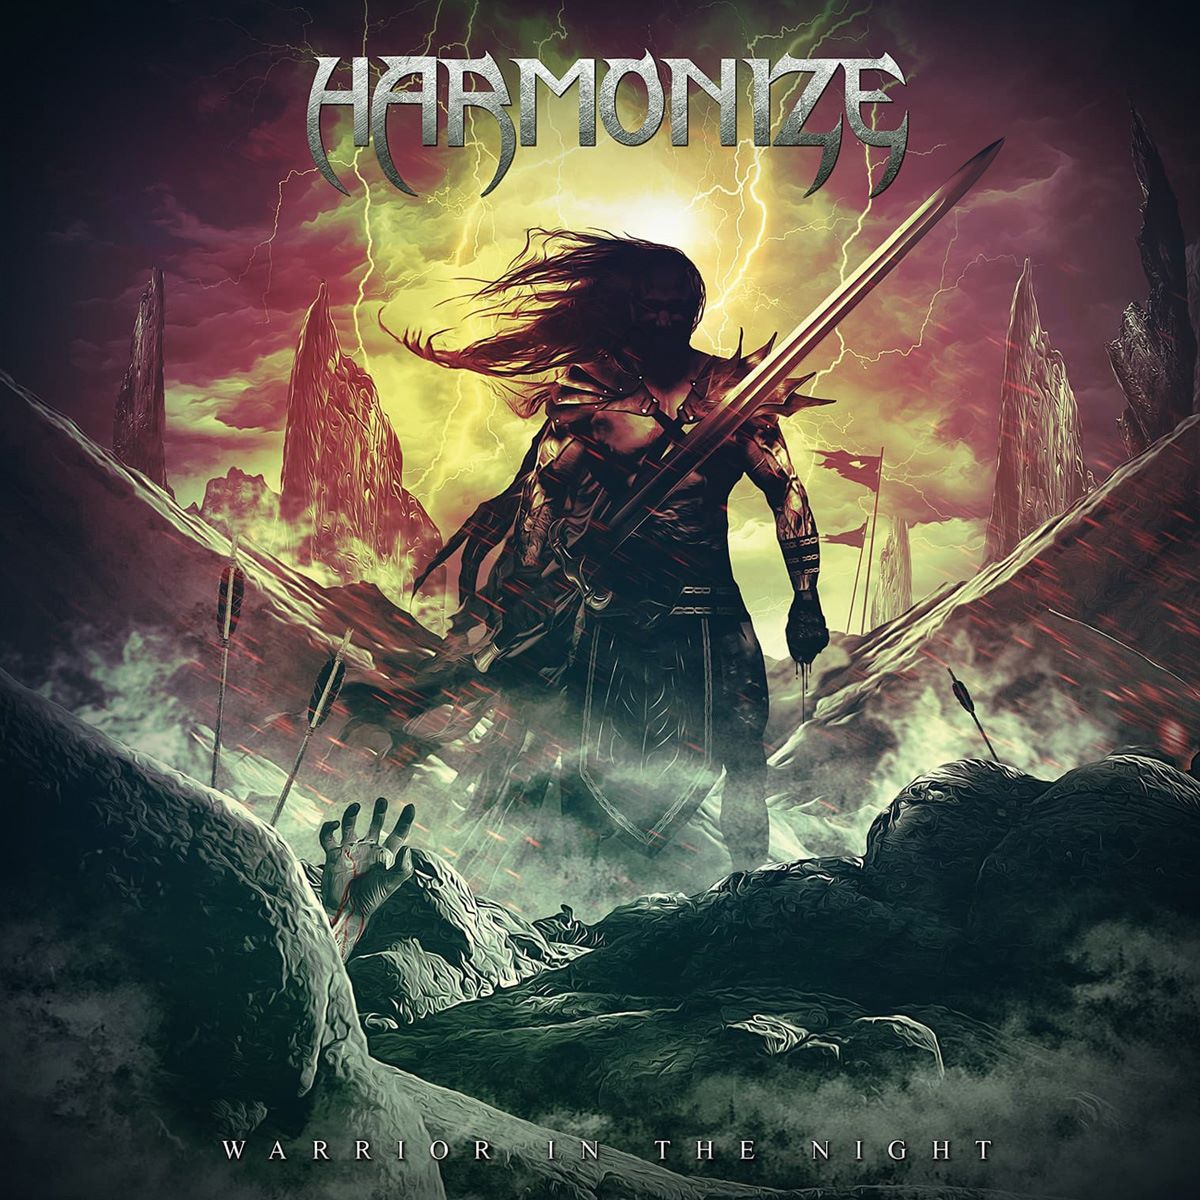 HARMONIZE - Warrior in the Night - album cover